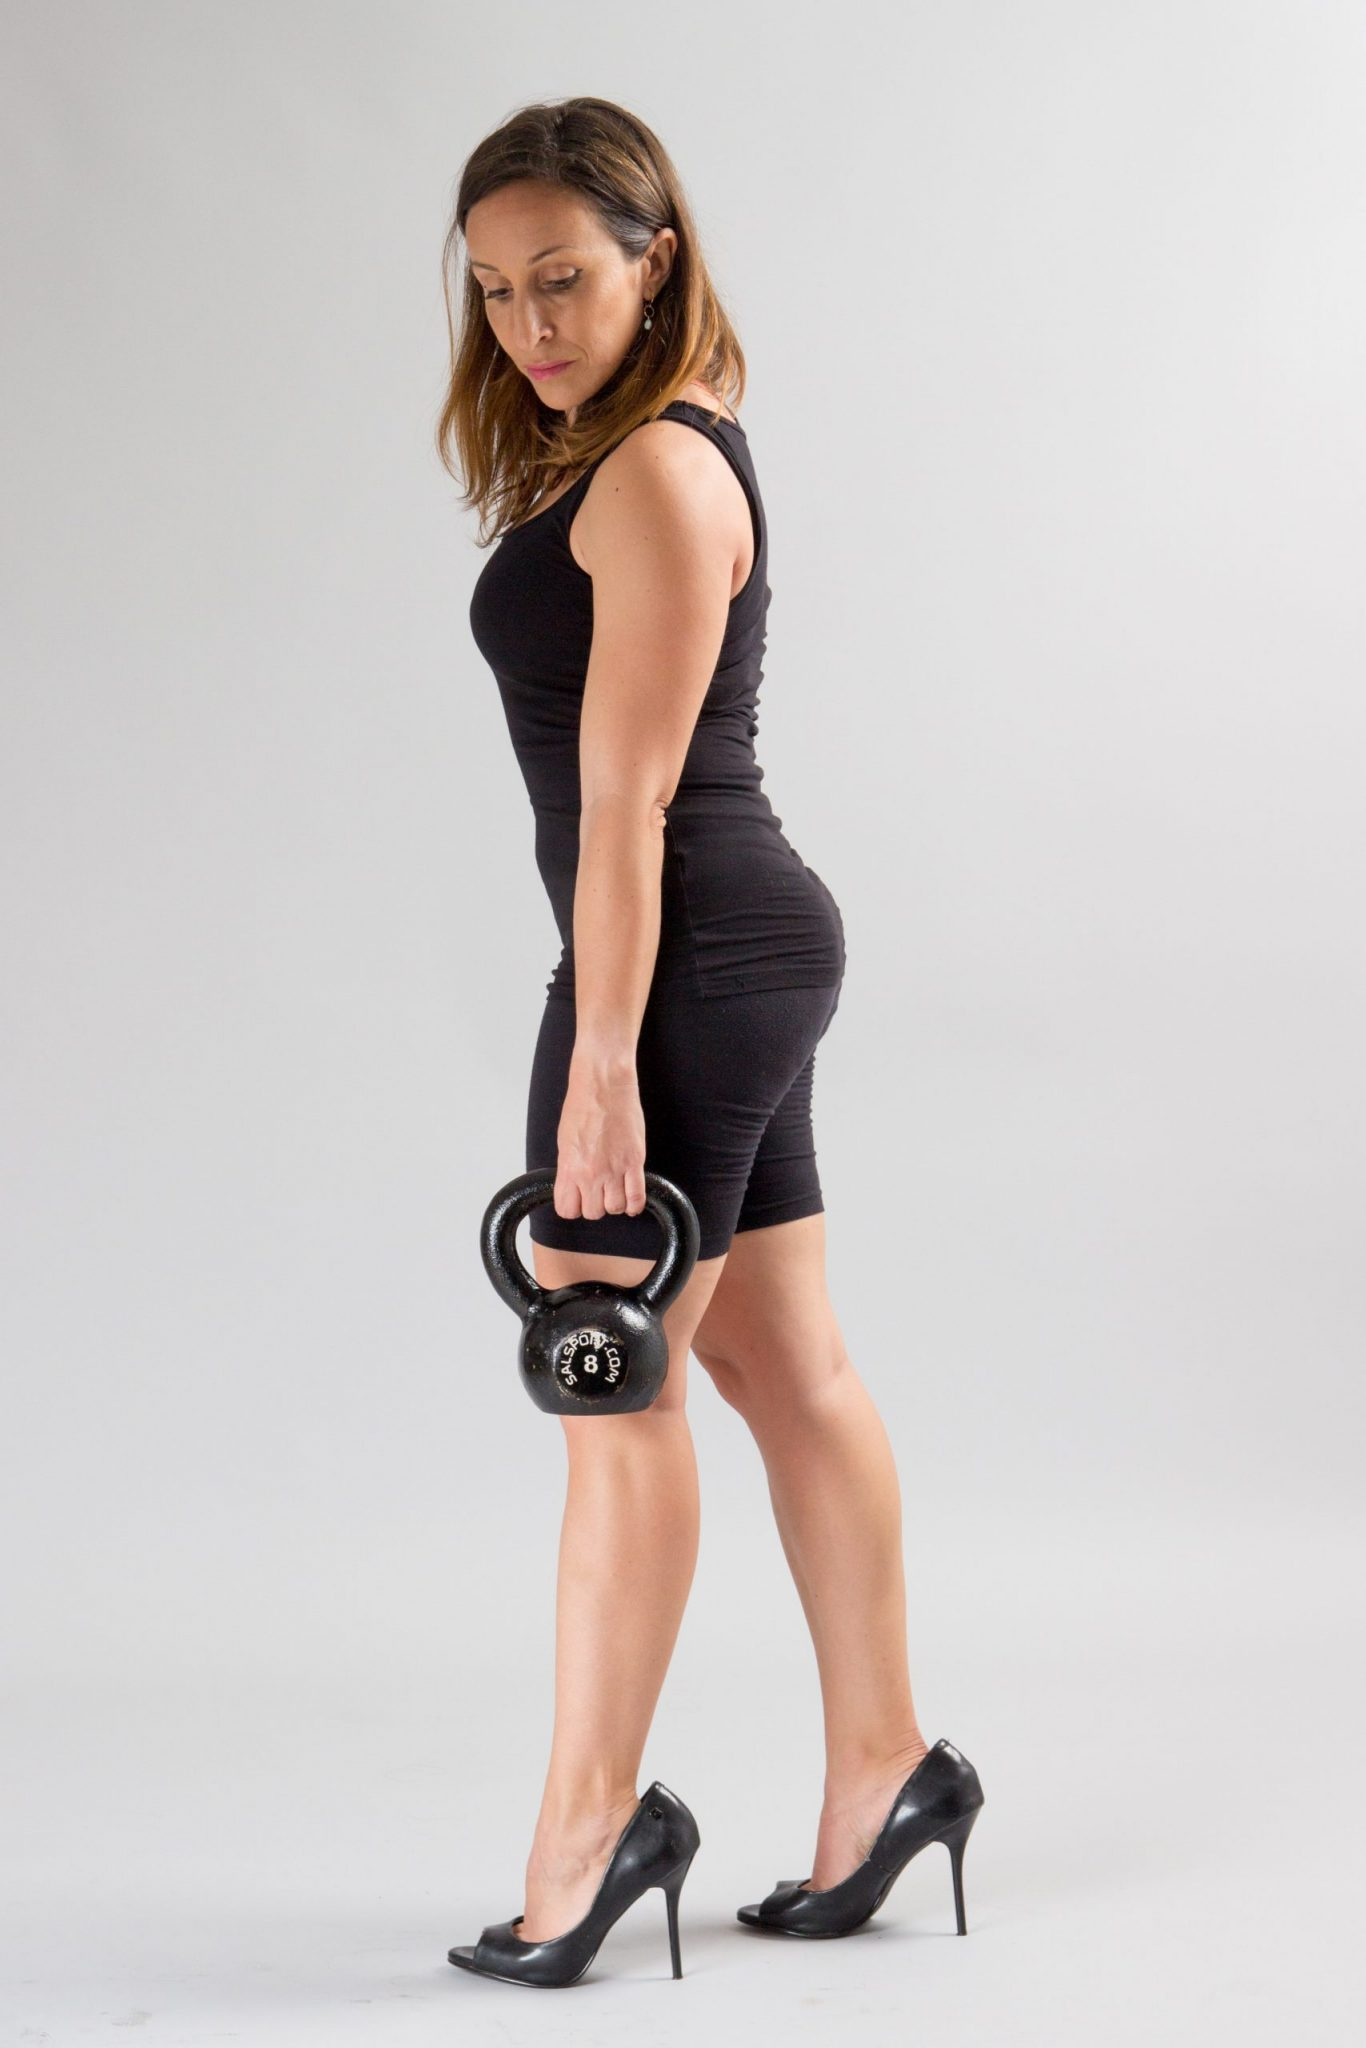 1 free weights 2 best free weight exercises to build muscle 3 kettlebell fat loss workout, Best Free Weight Exercises